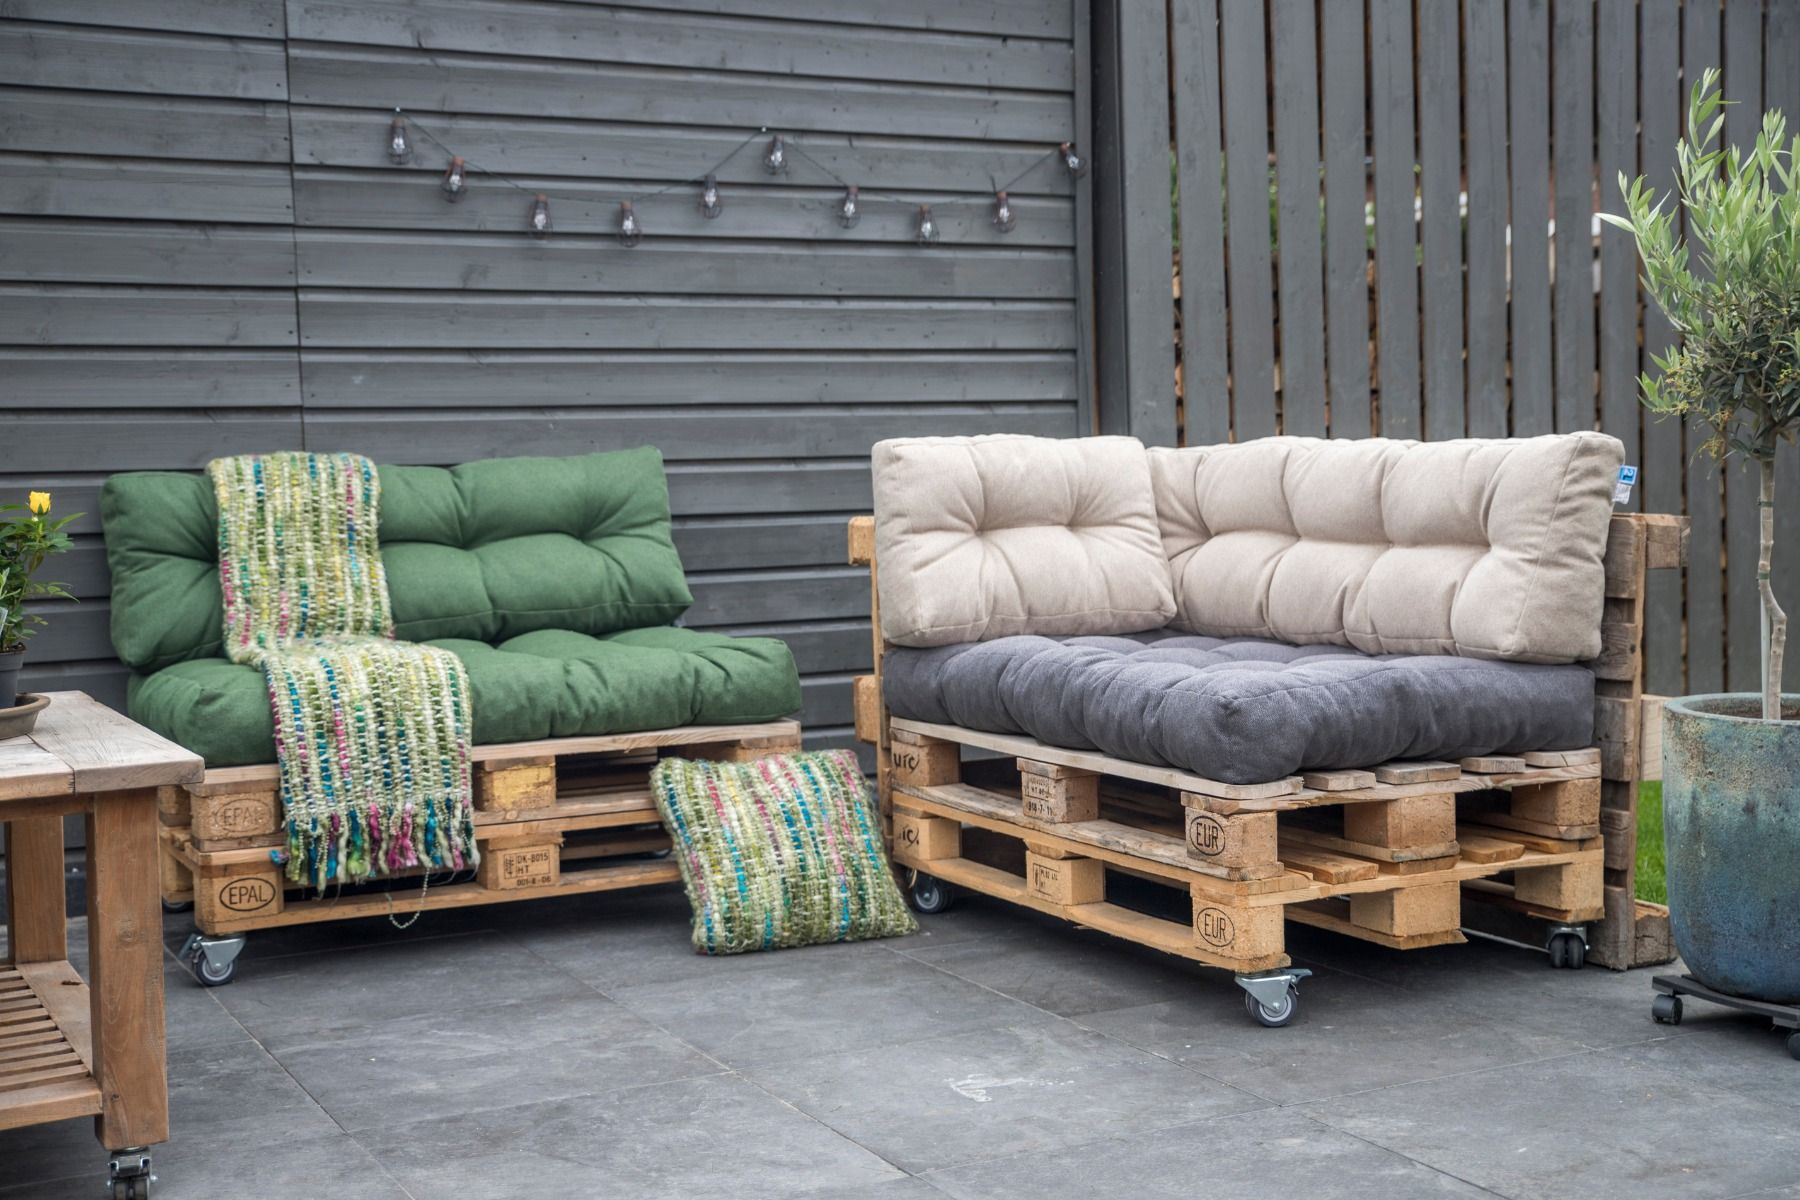 2l home and garden palletkussens - woonblog